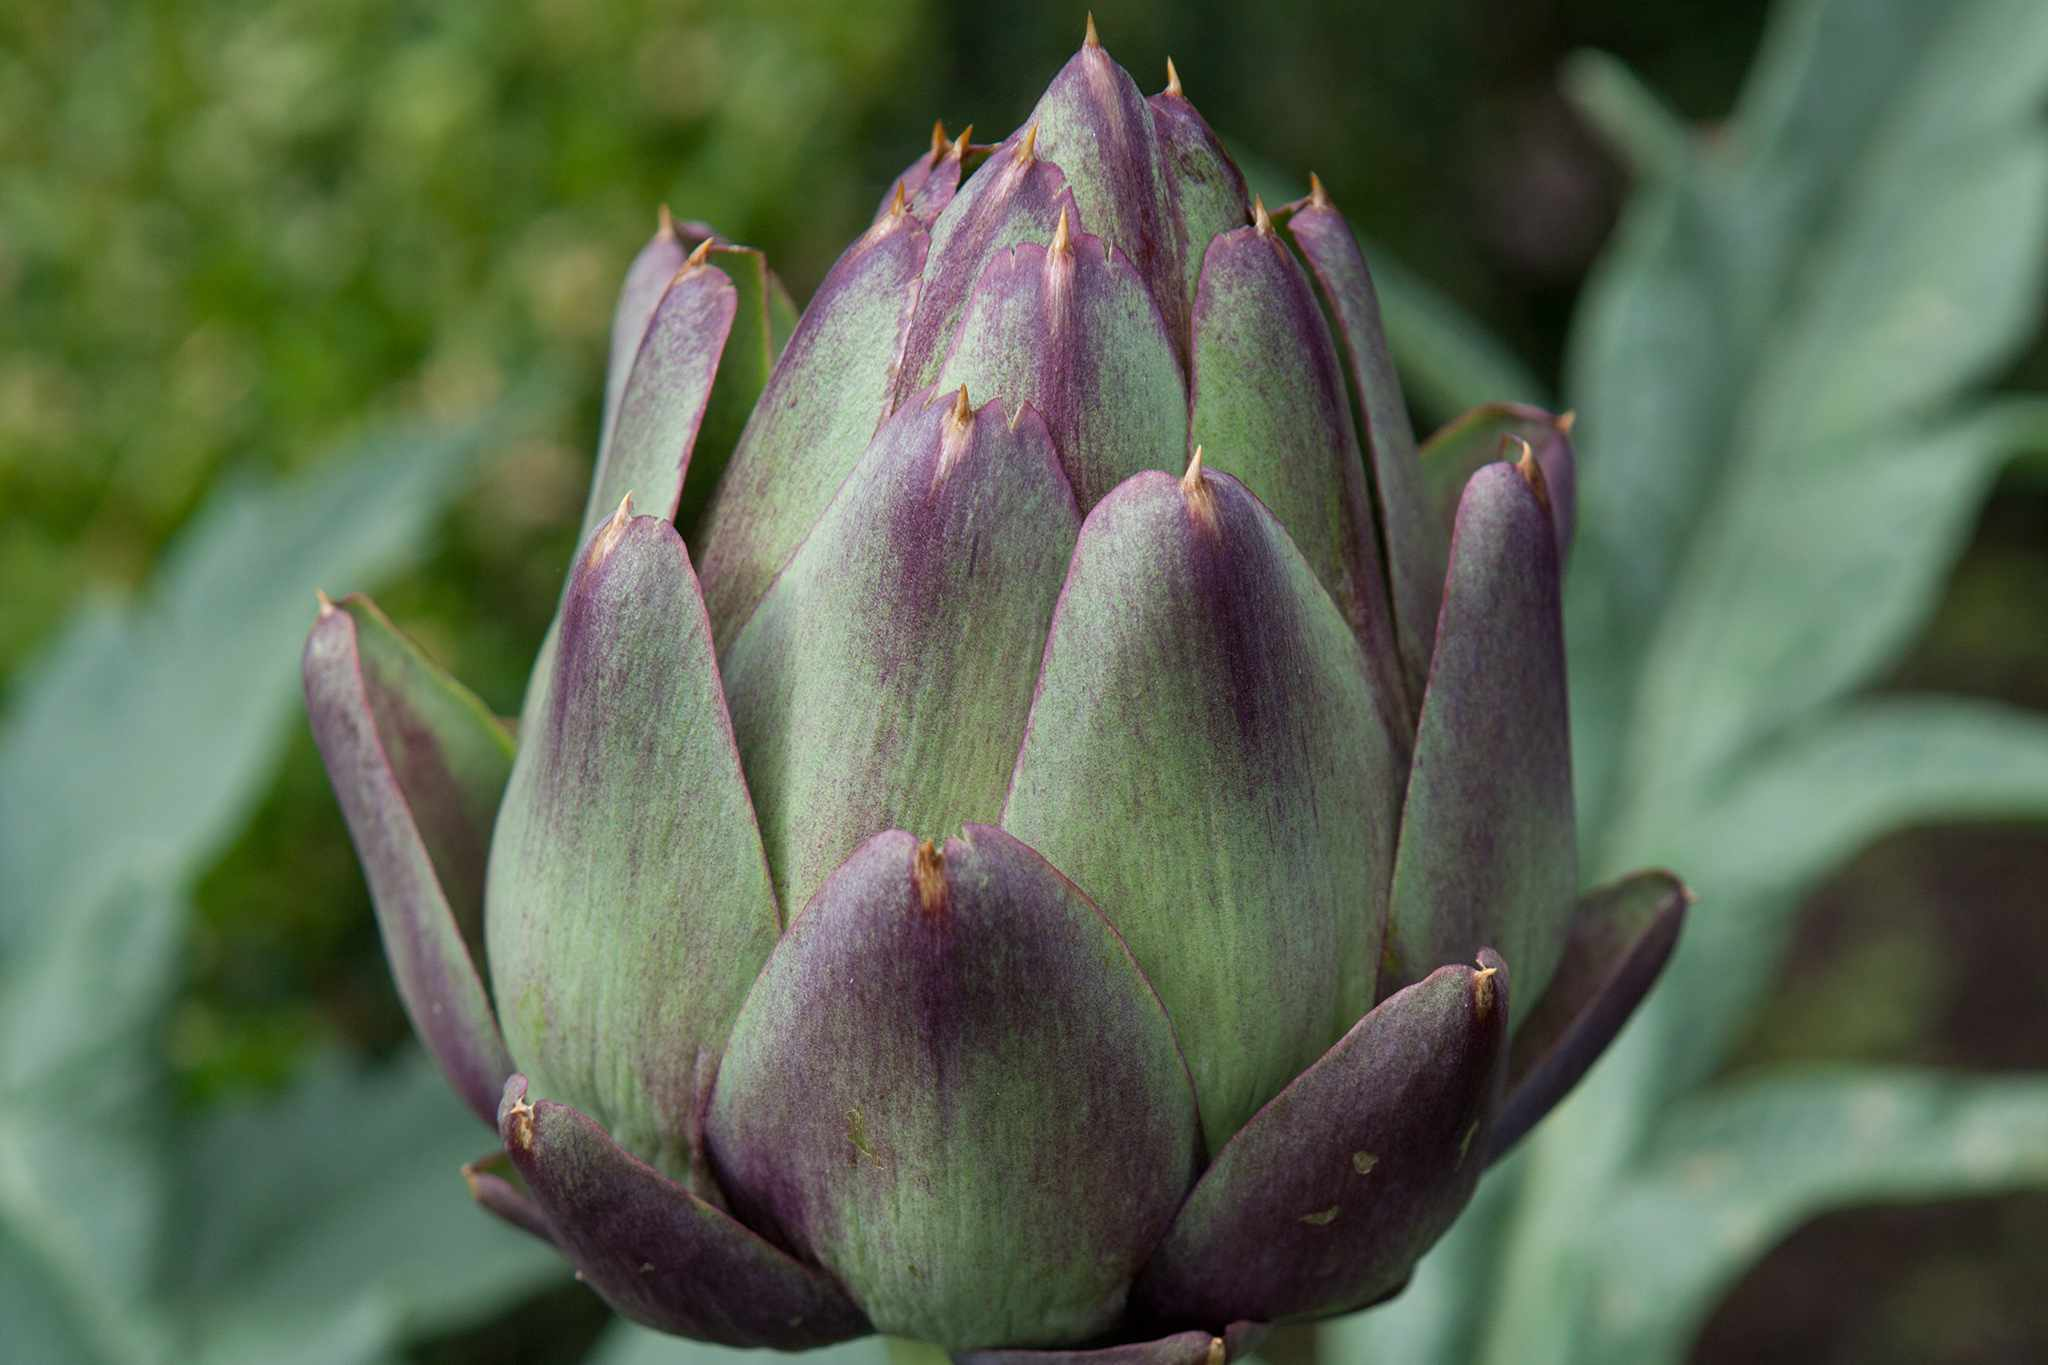 Jobs on the allotment in August - harvesting globe artichokes